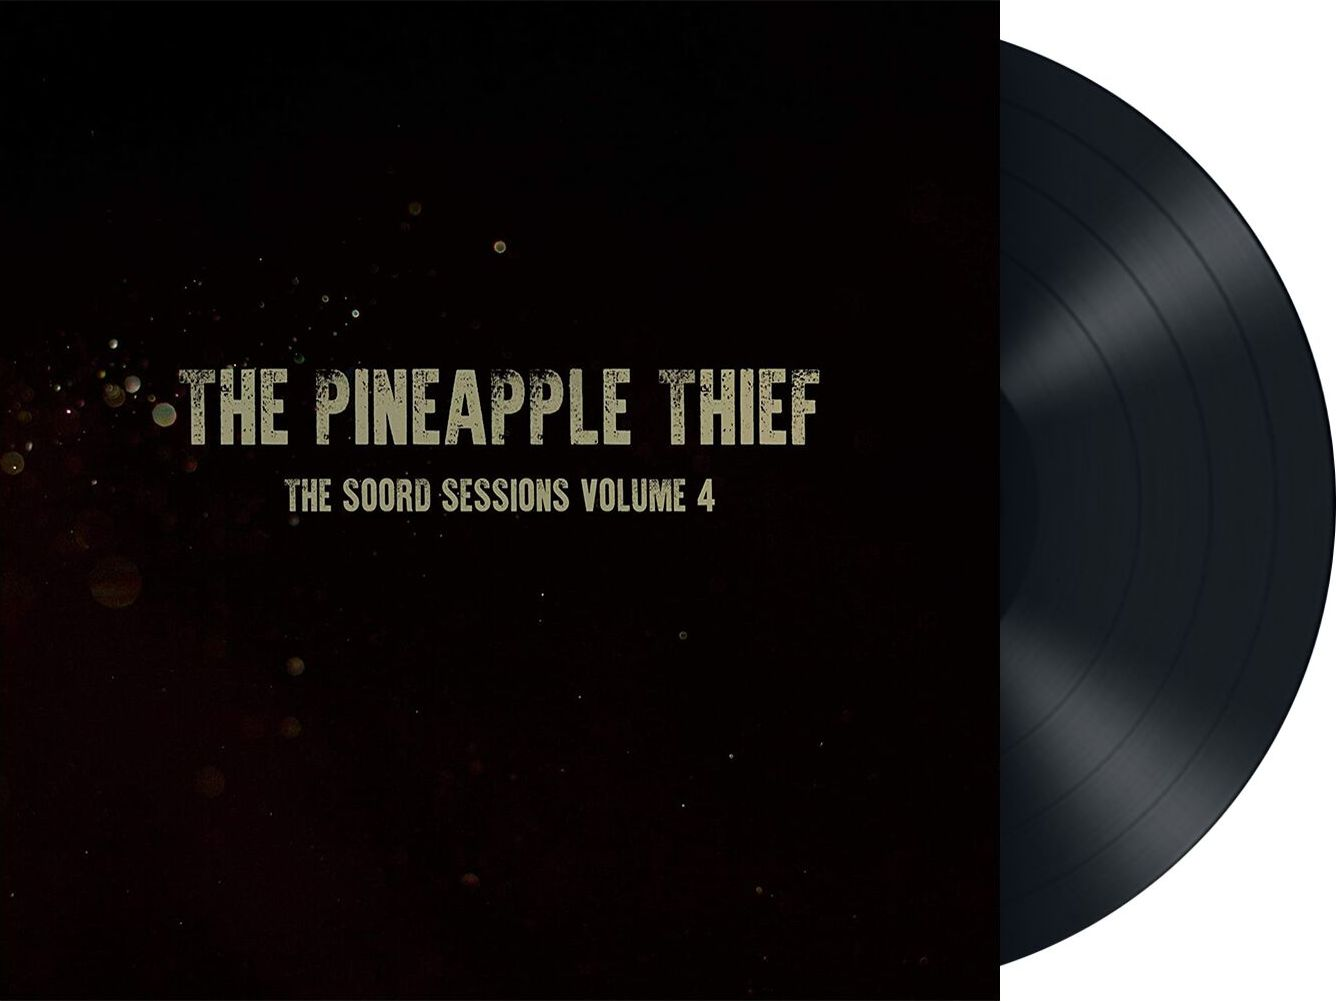 The Pineapple Thief The soord sessions LP standard